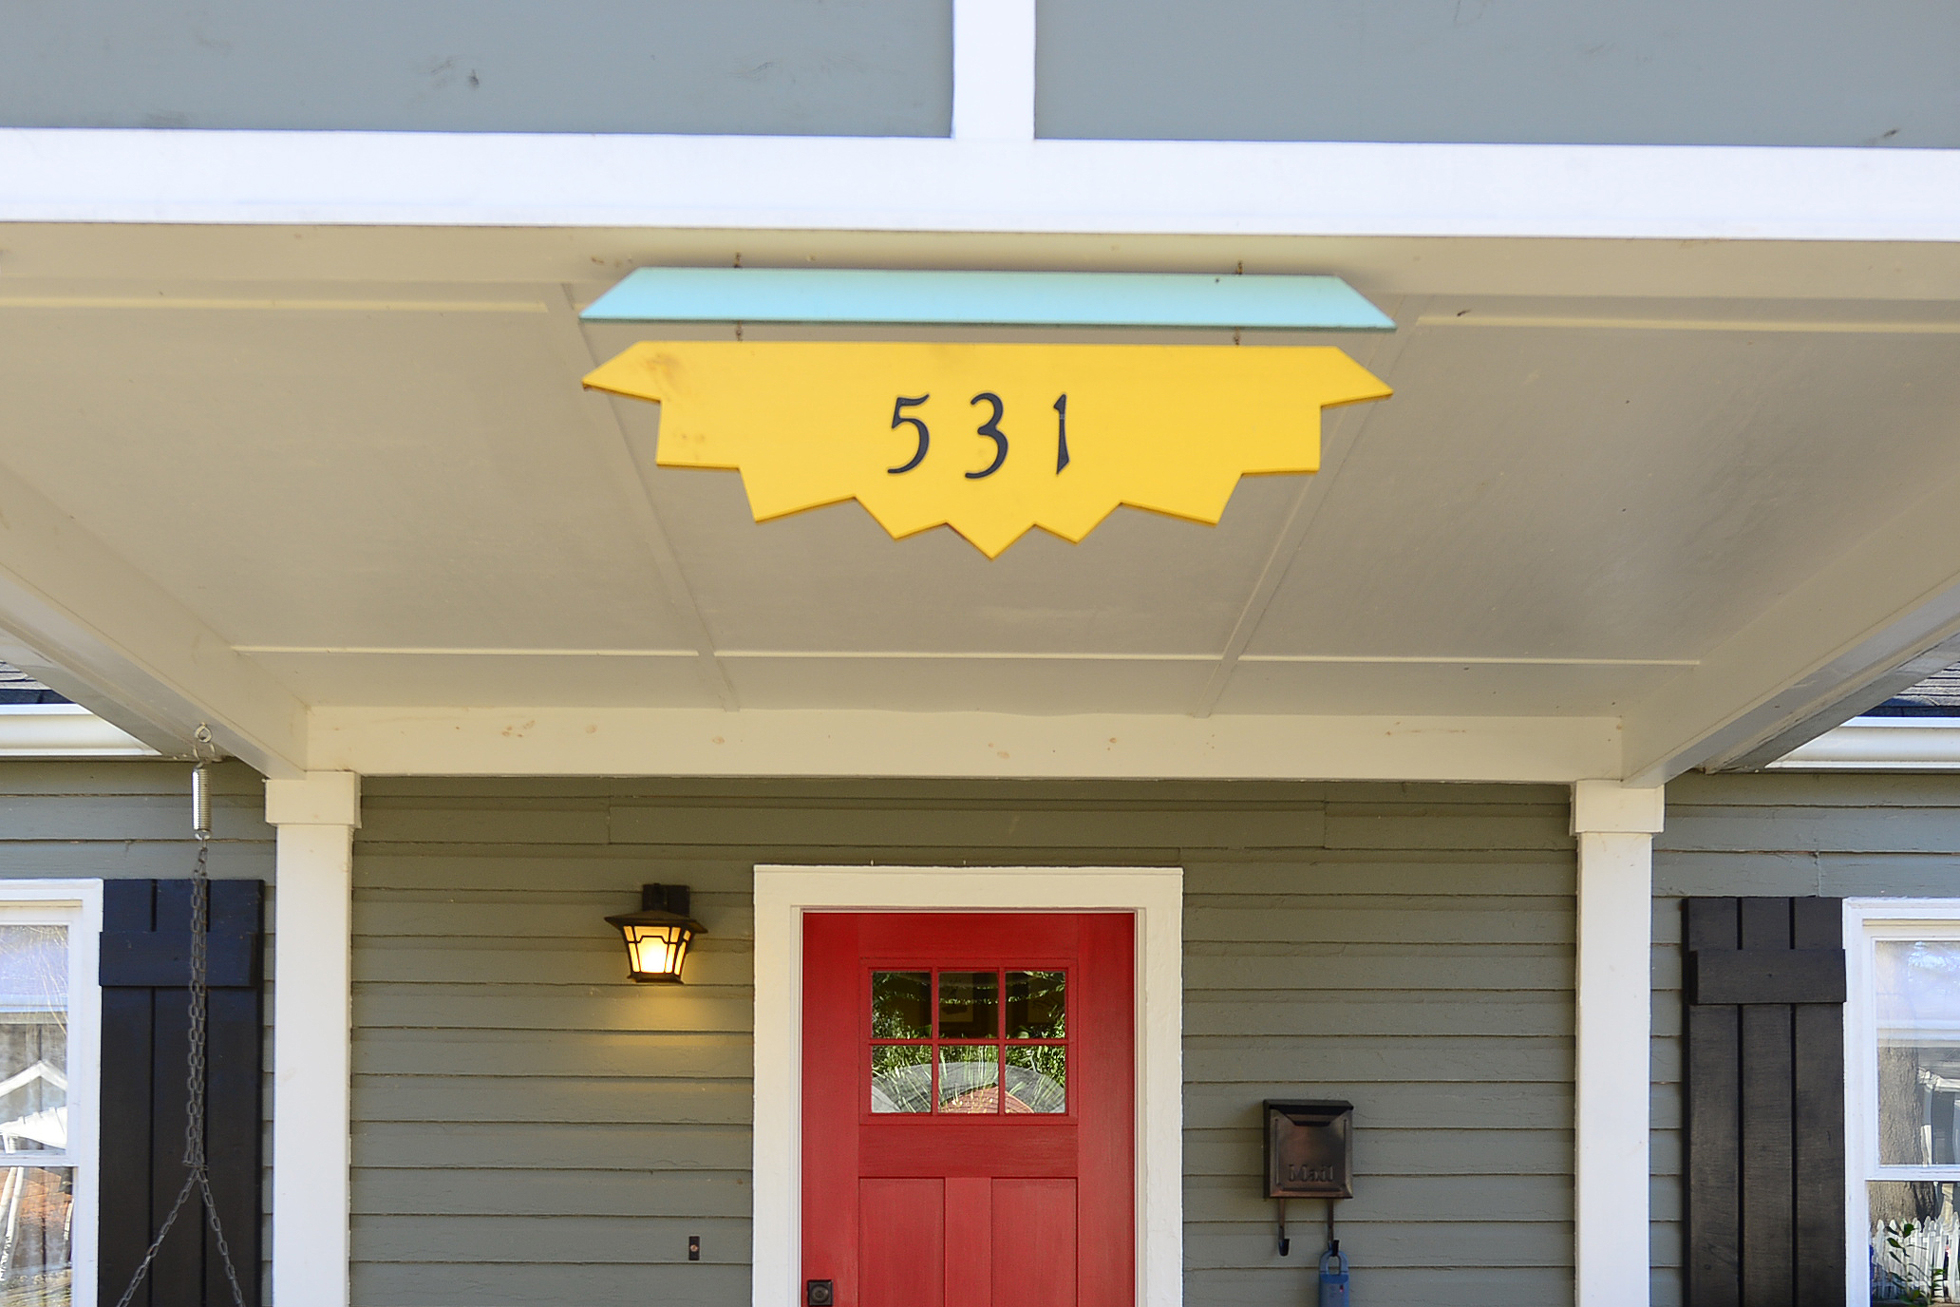 Black house numbers on a piece of yellow painted wood